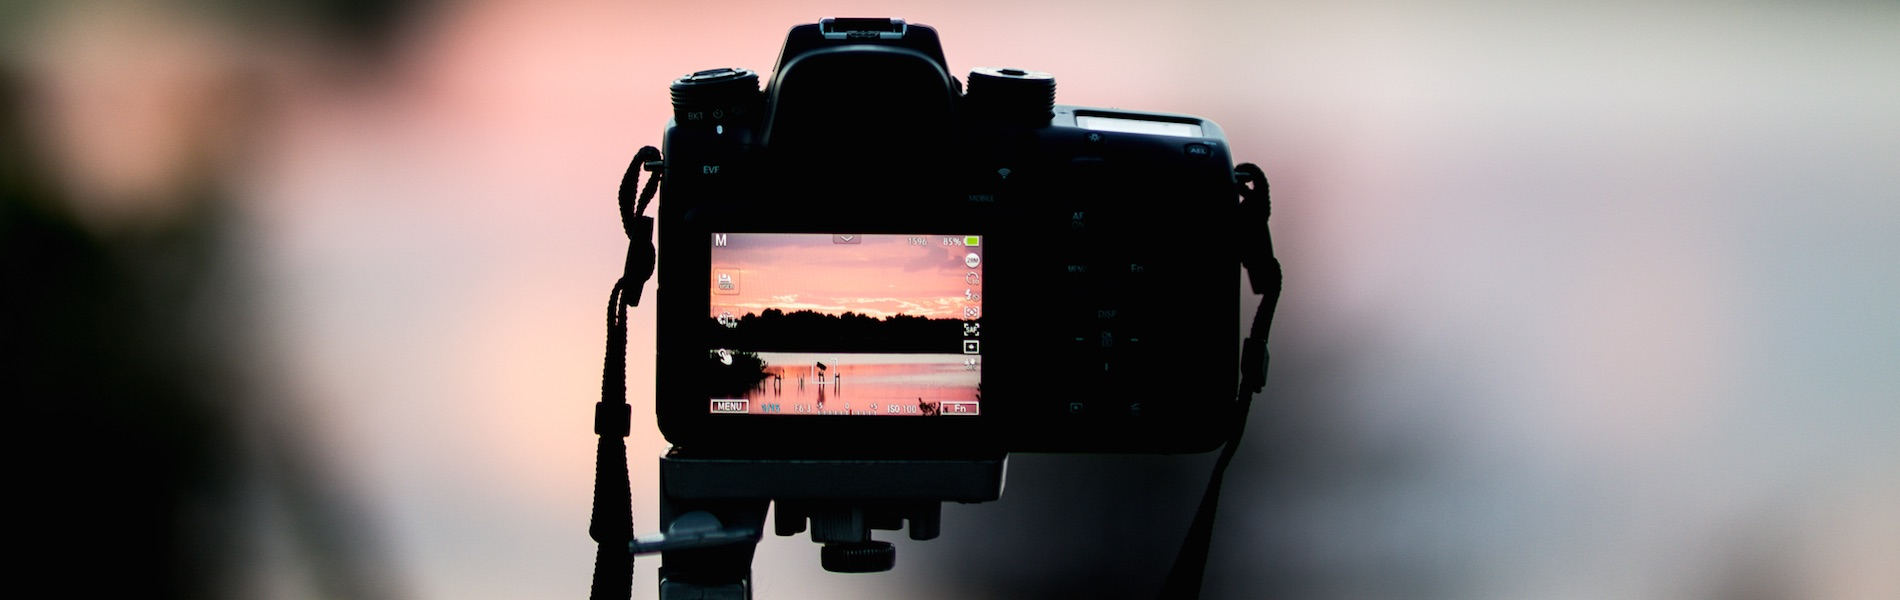 NX1 Review - First Impressions of the Samsung #NX1 2